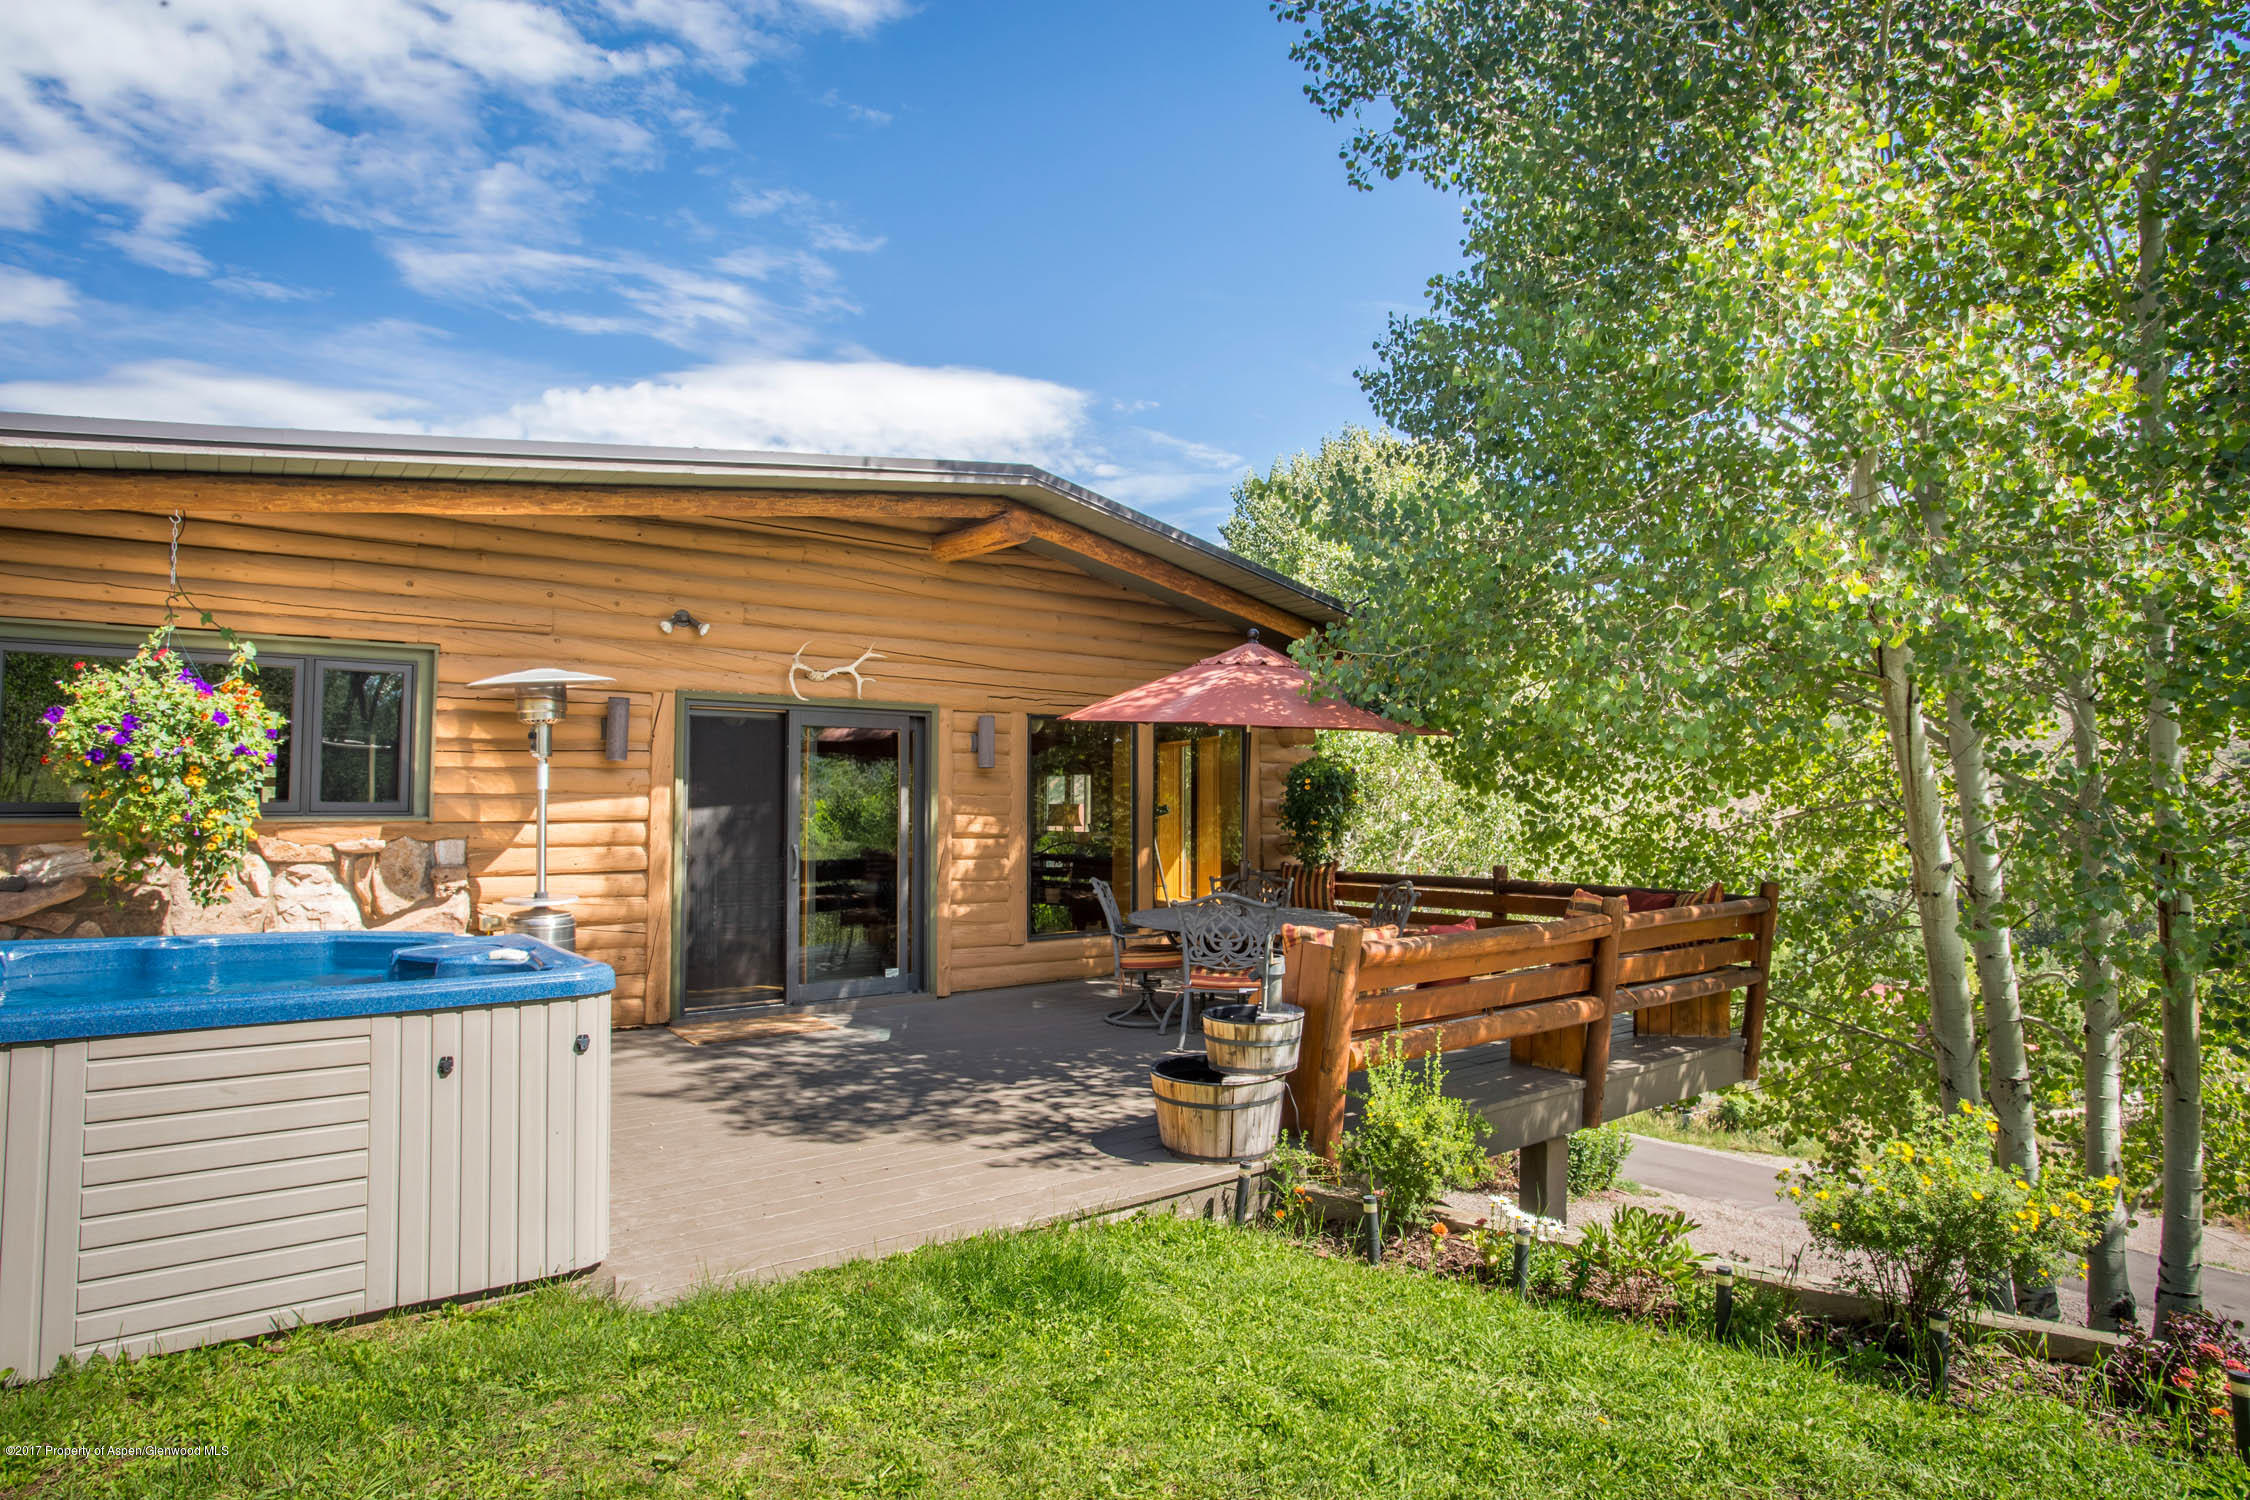 167 Picket Pin Lane - Old Snowmass, Colorado